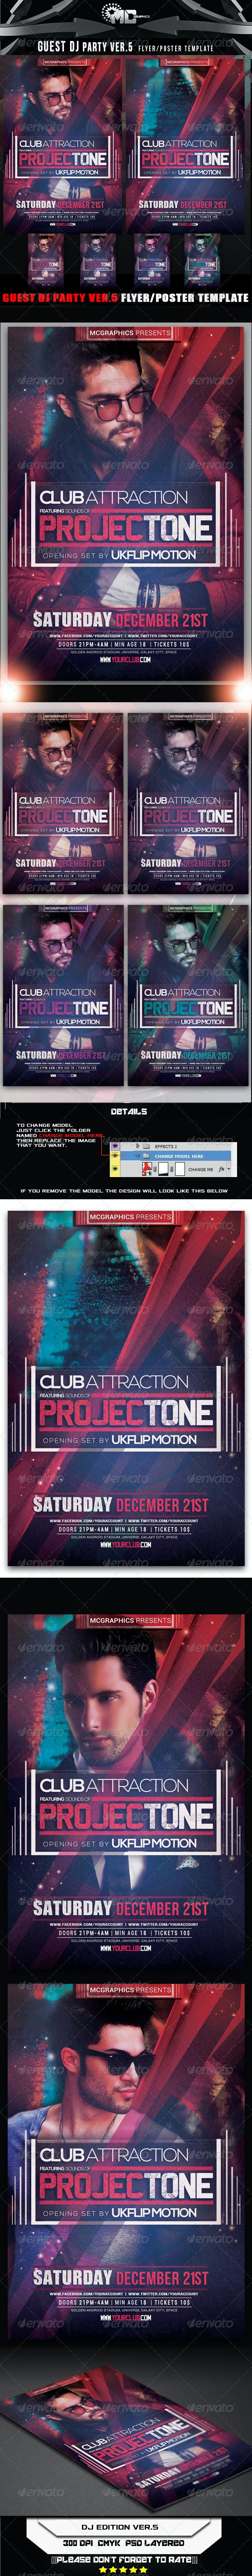 Guest DJ Party Ver.5 Flyer/Poster Template - Flyers Print Templates